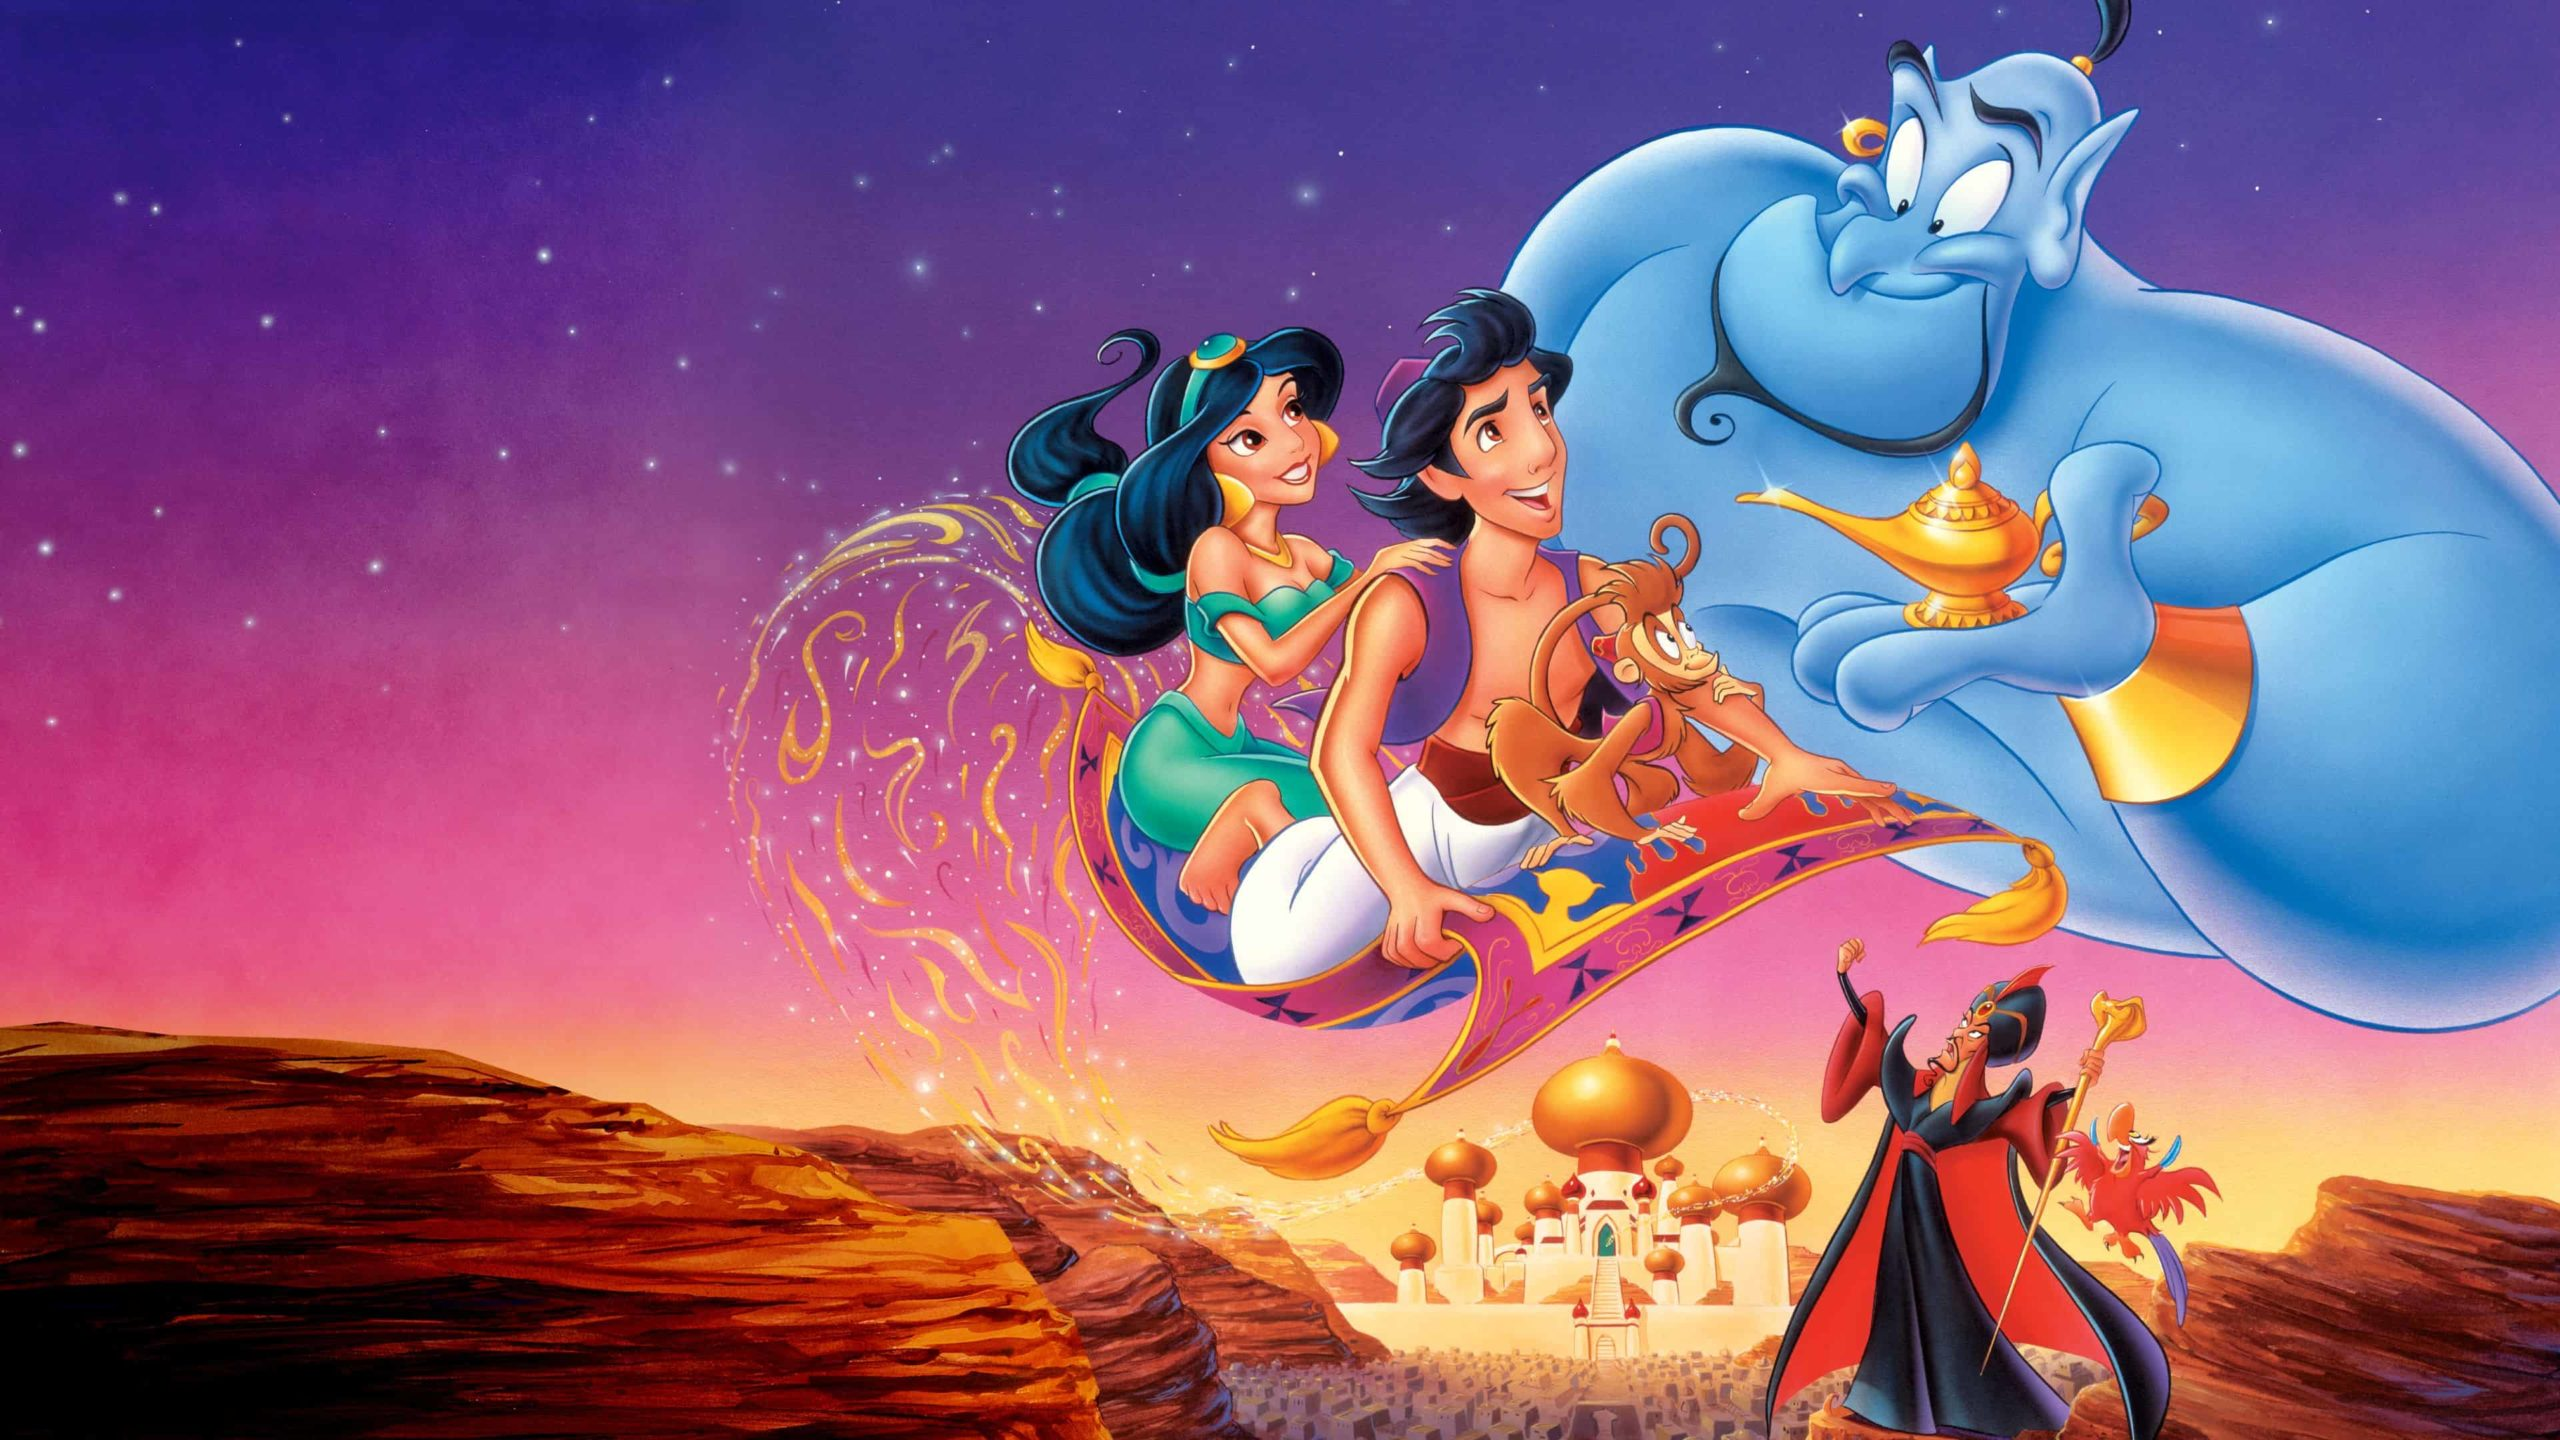 Top 10 Disney Animated Movies To Watch On Disney Plus